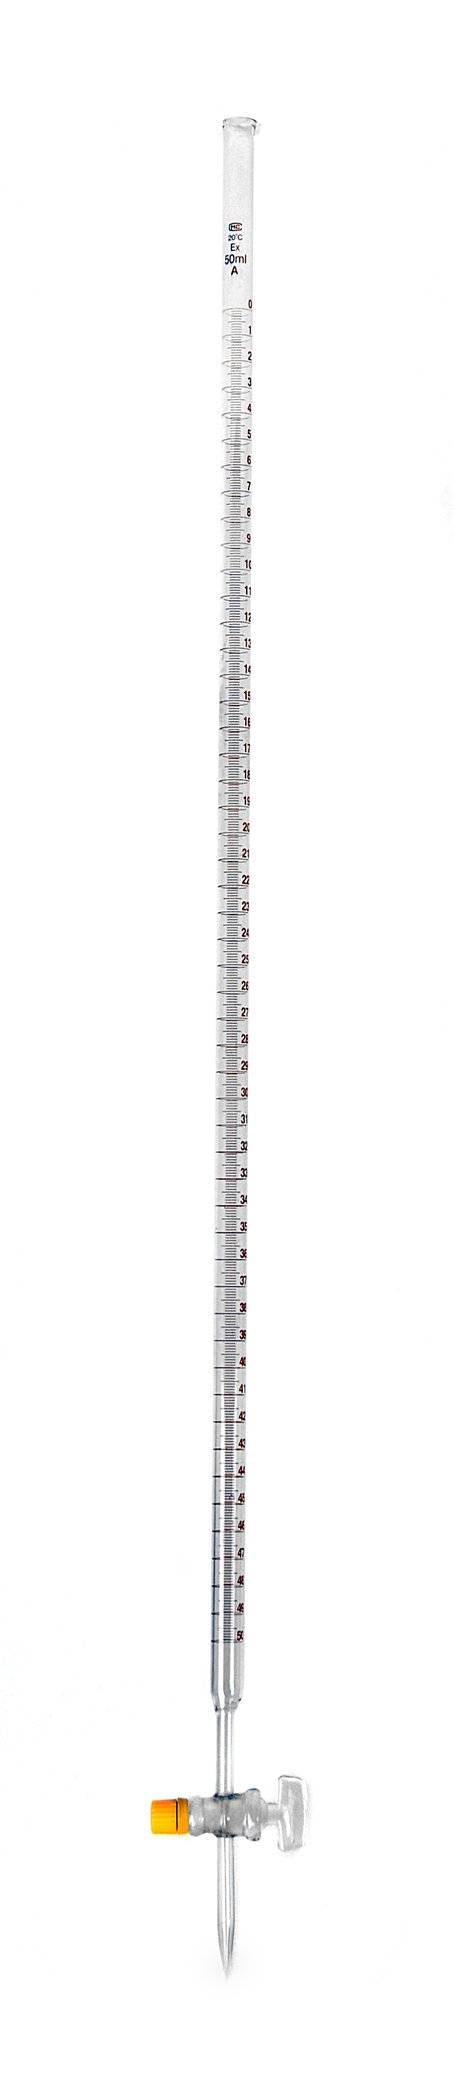 American Educational Borosilicate Glass 25mL Burette, with PTFE Stopcock